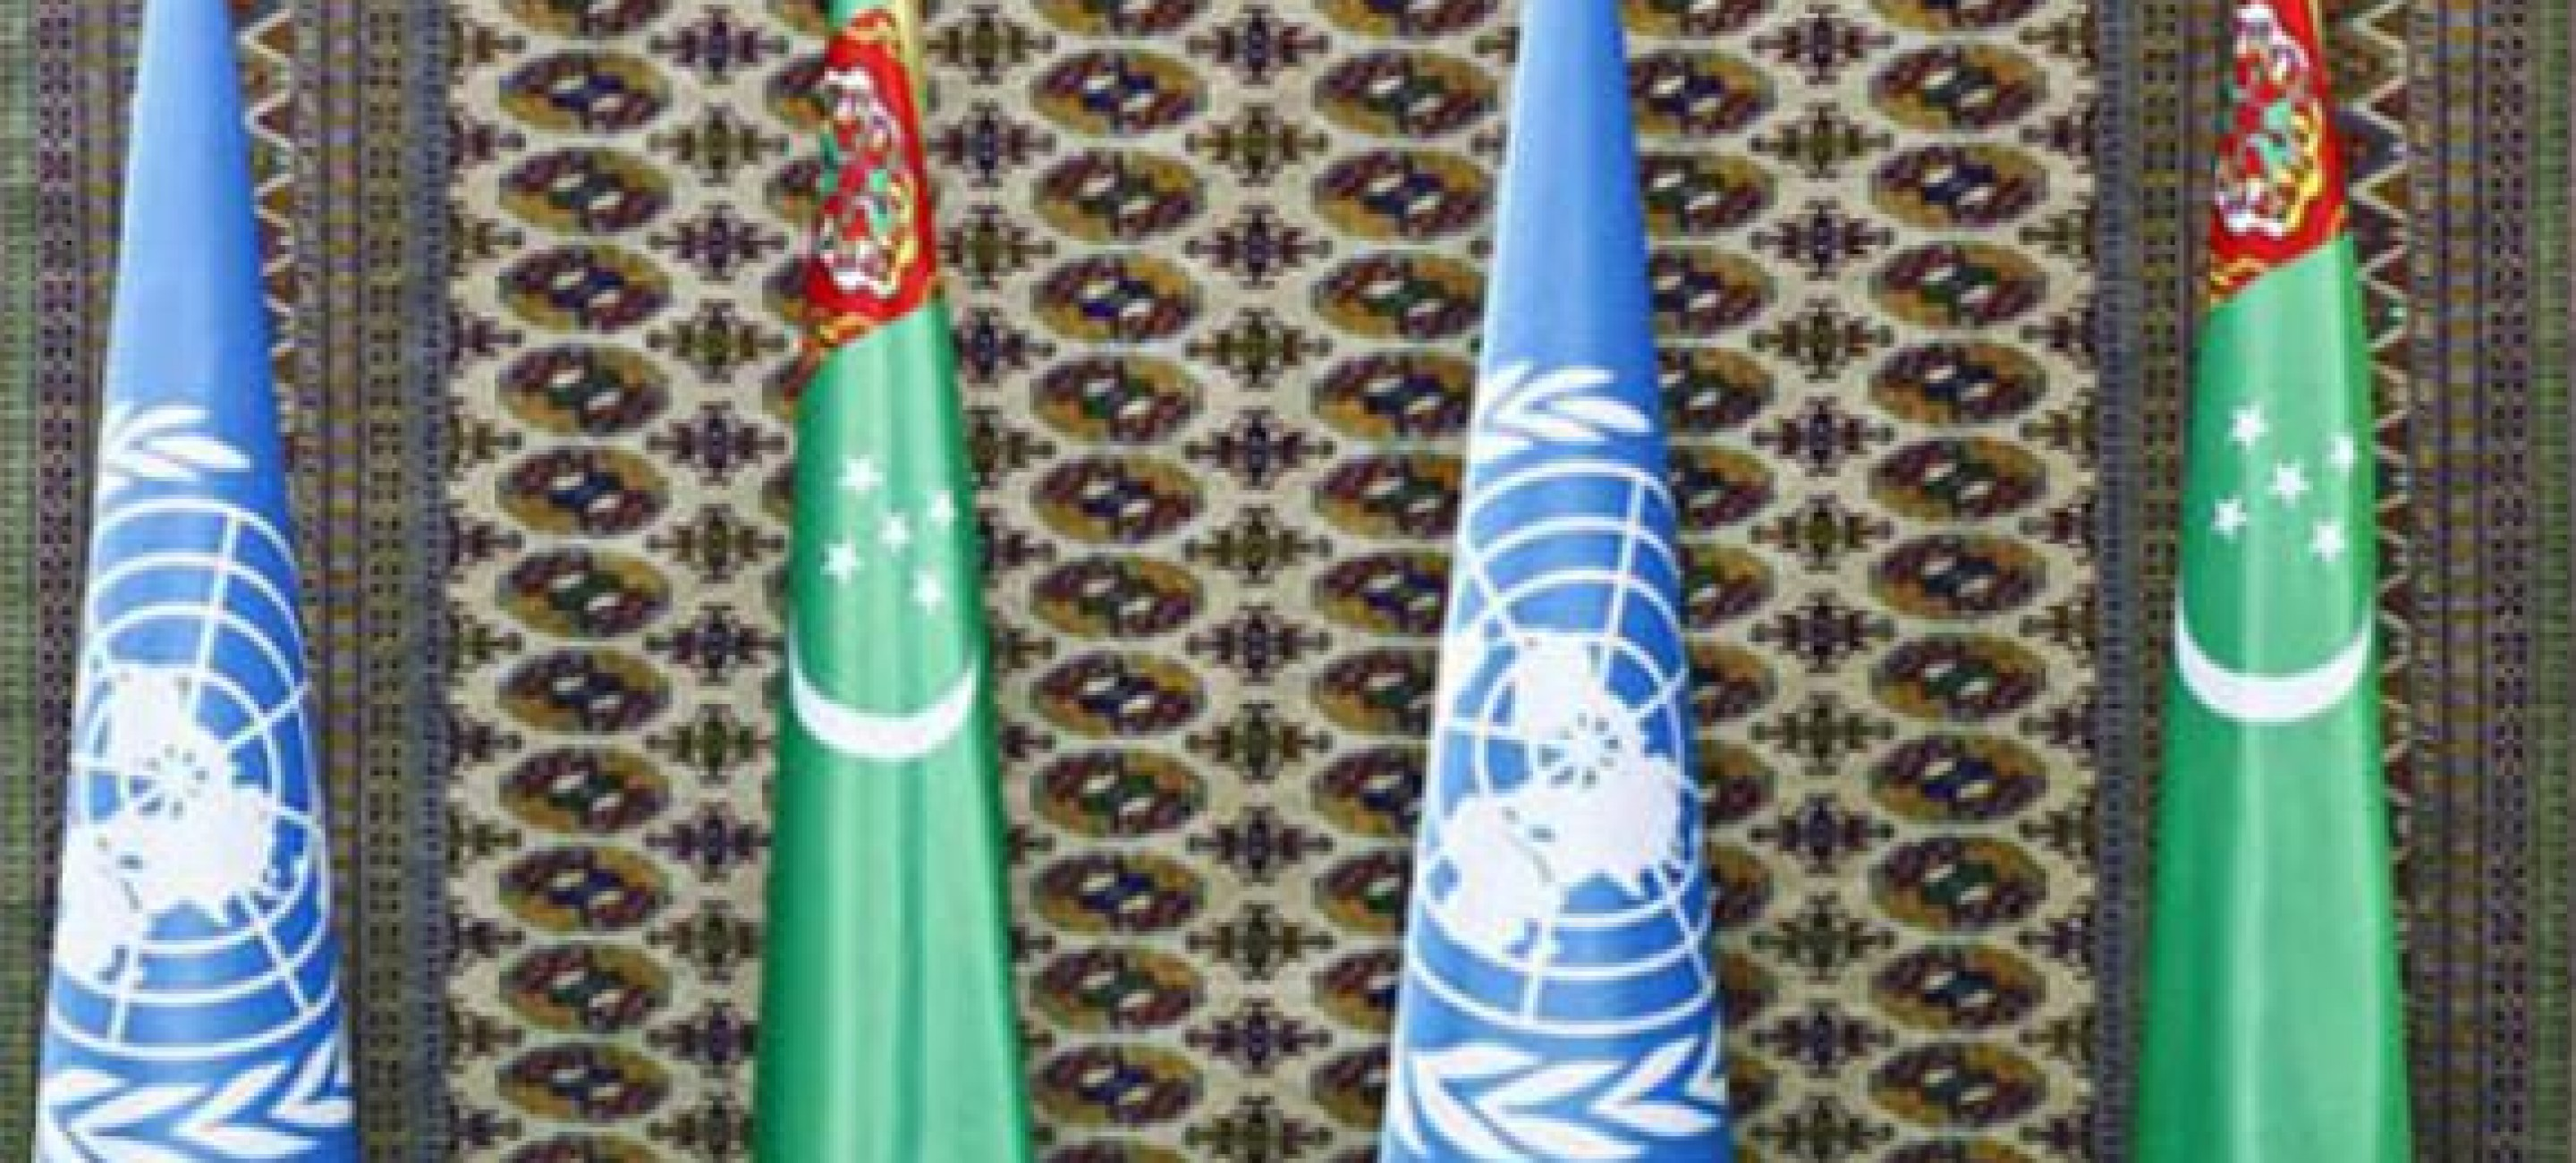 The delegation of Turkmenistan completed it's visit to the UN General Assembly session in New York